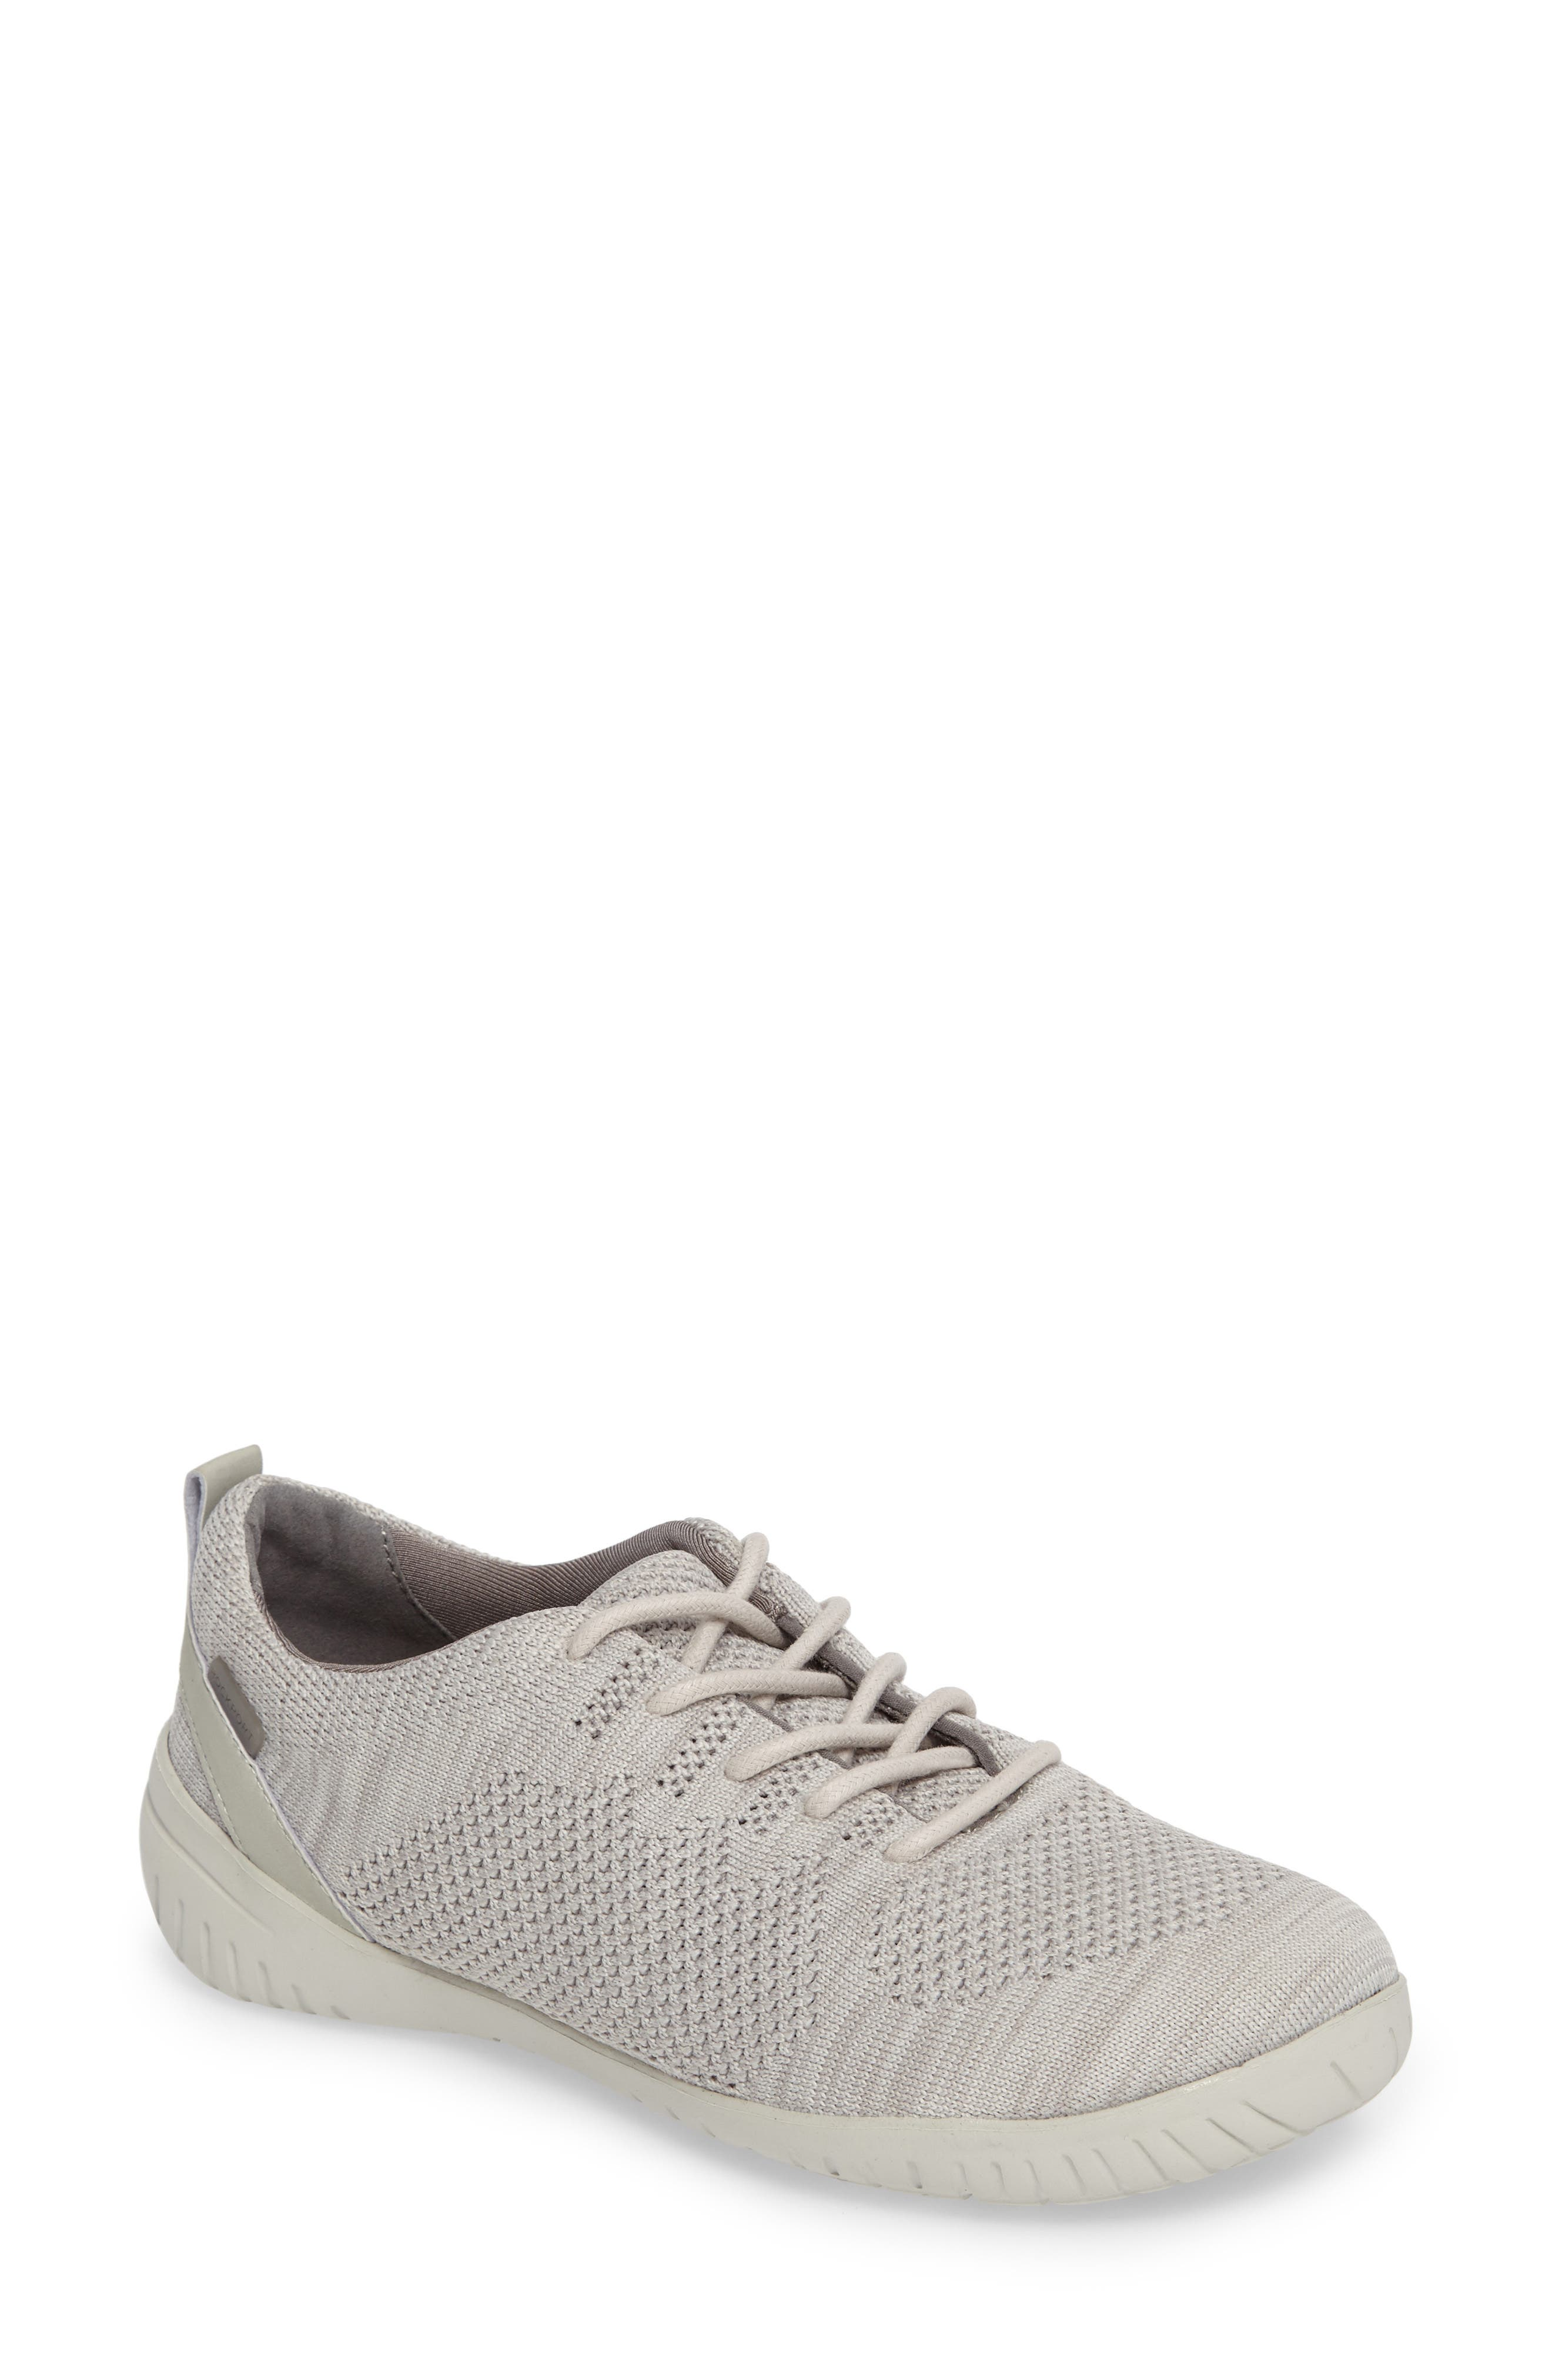 Raelyn Knit Sneaker,                             Main thumbnail 1, color,                             020